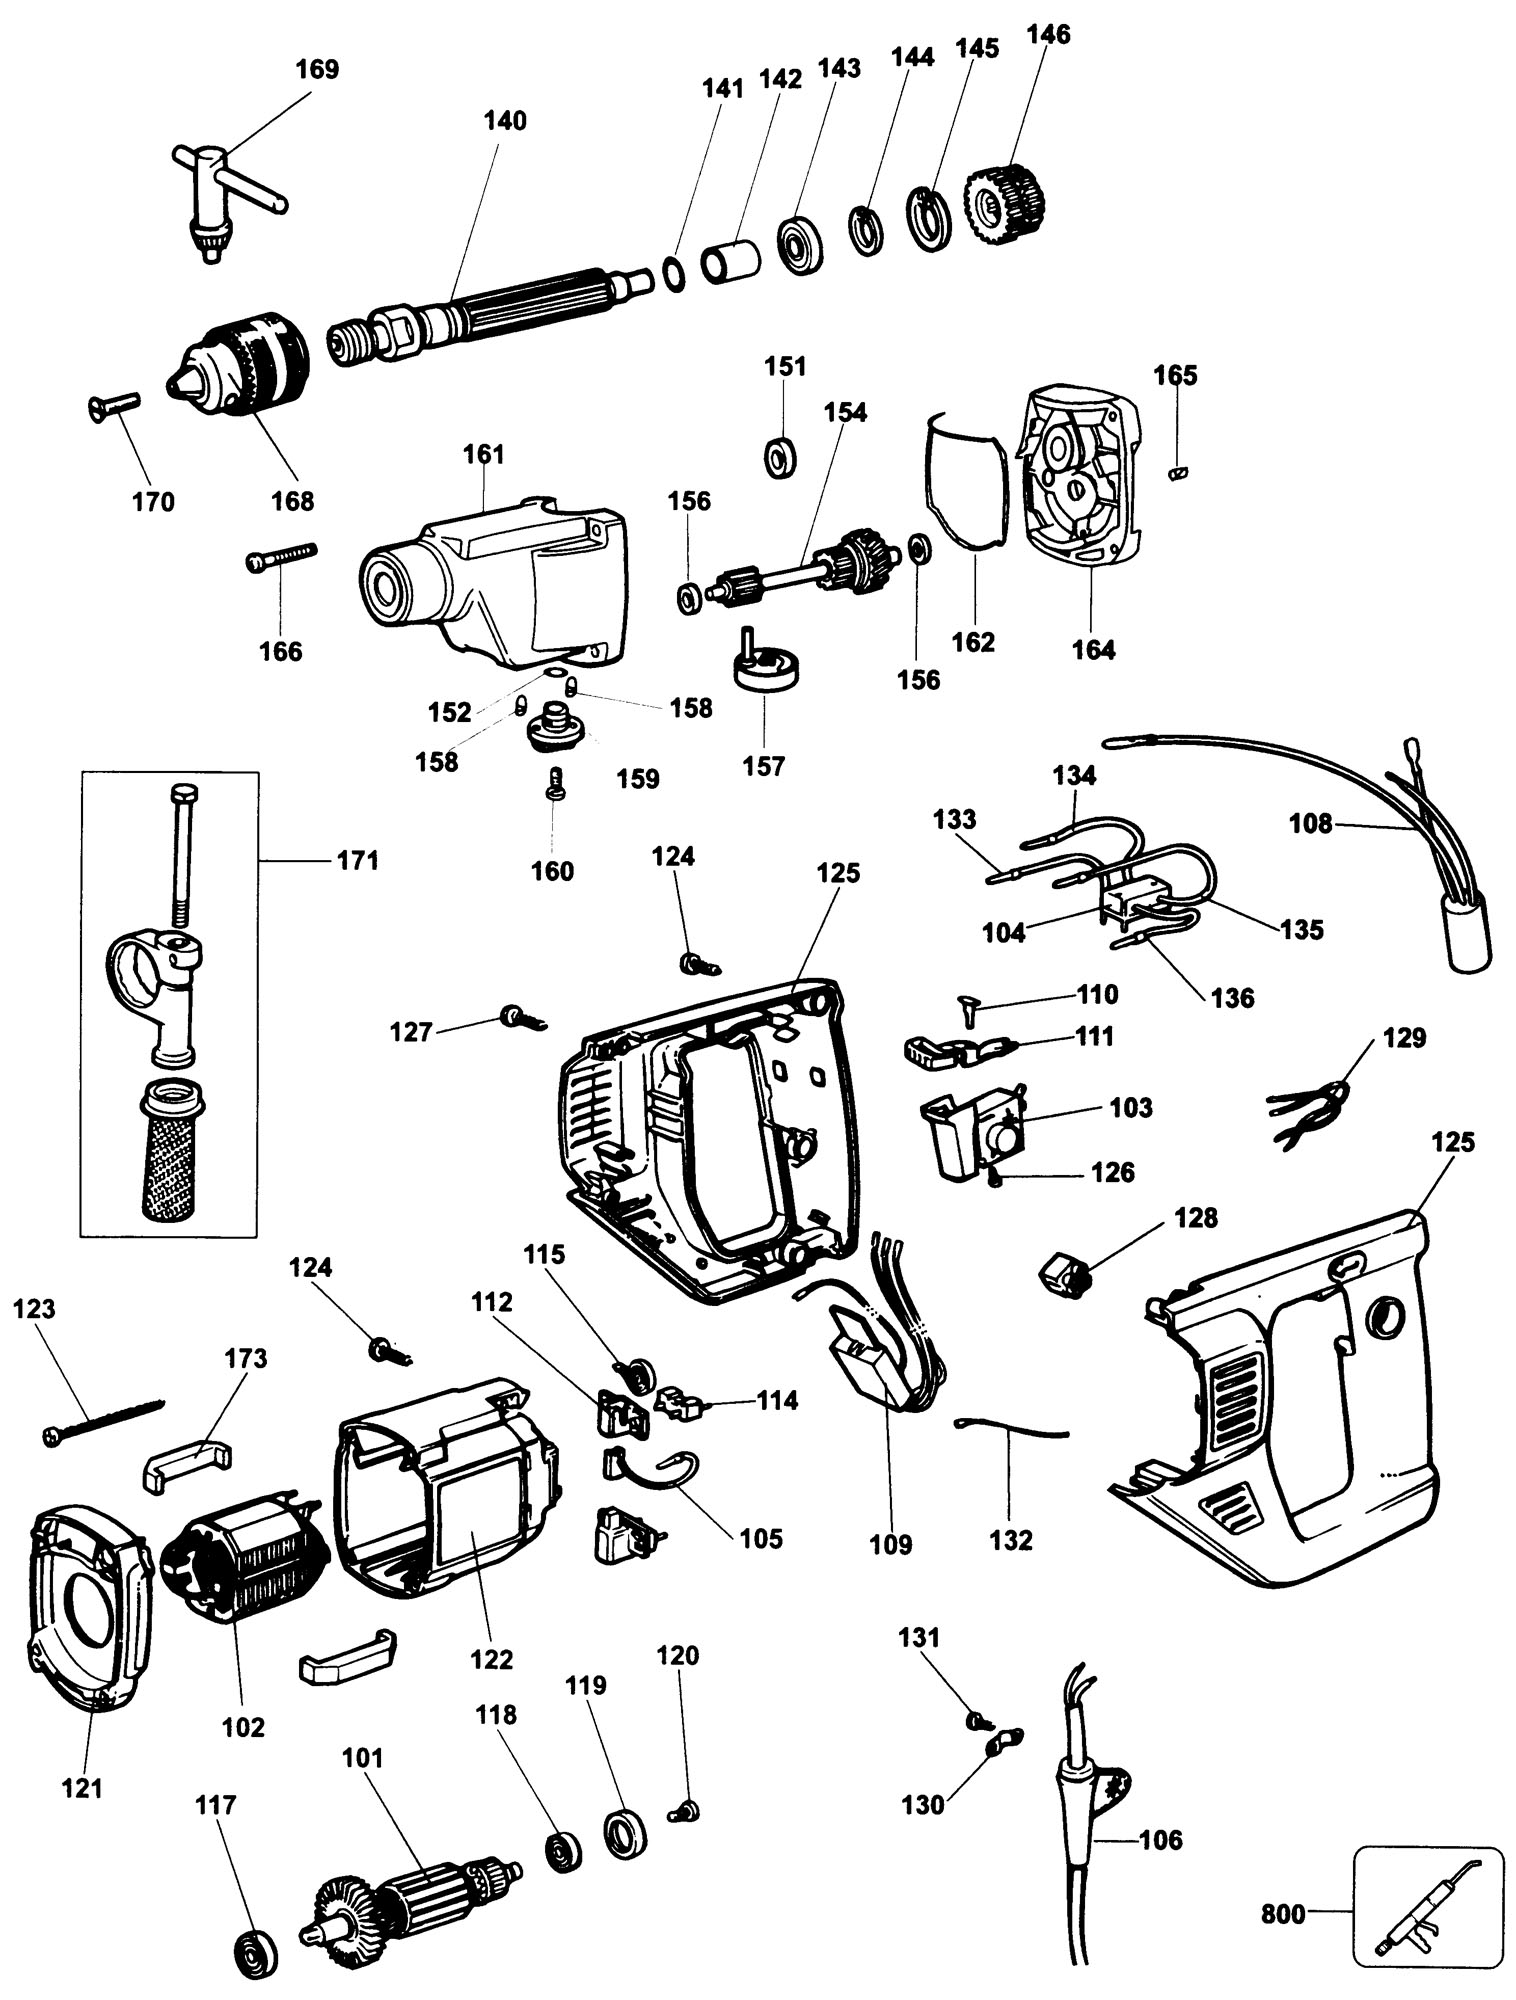 Electric Switches For Power Tools